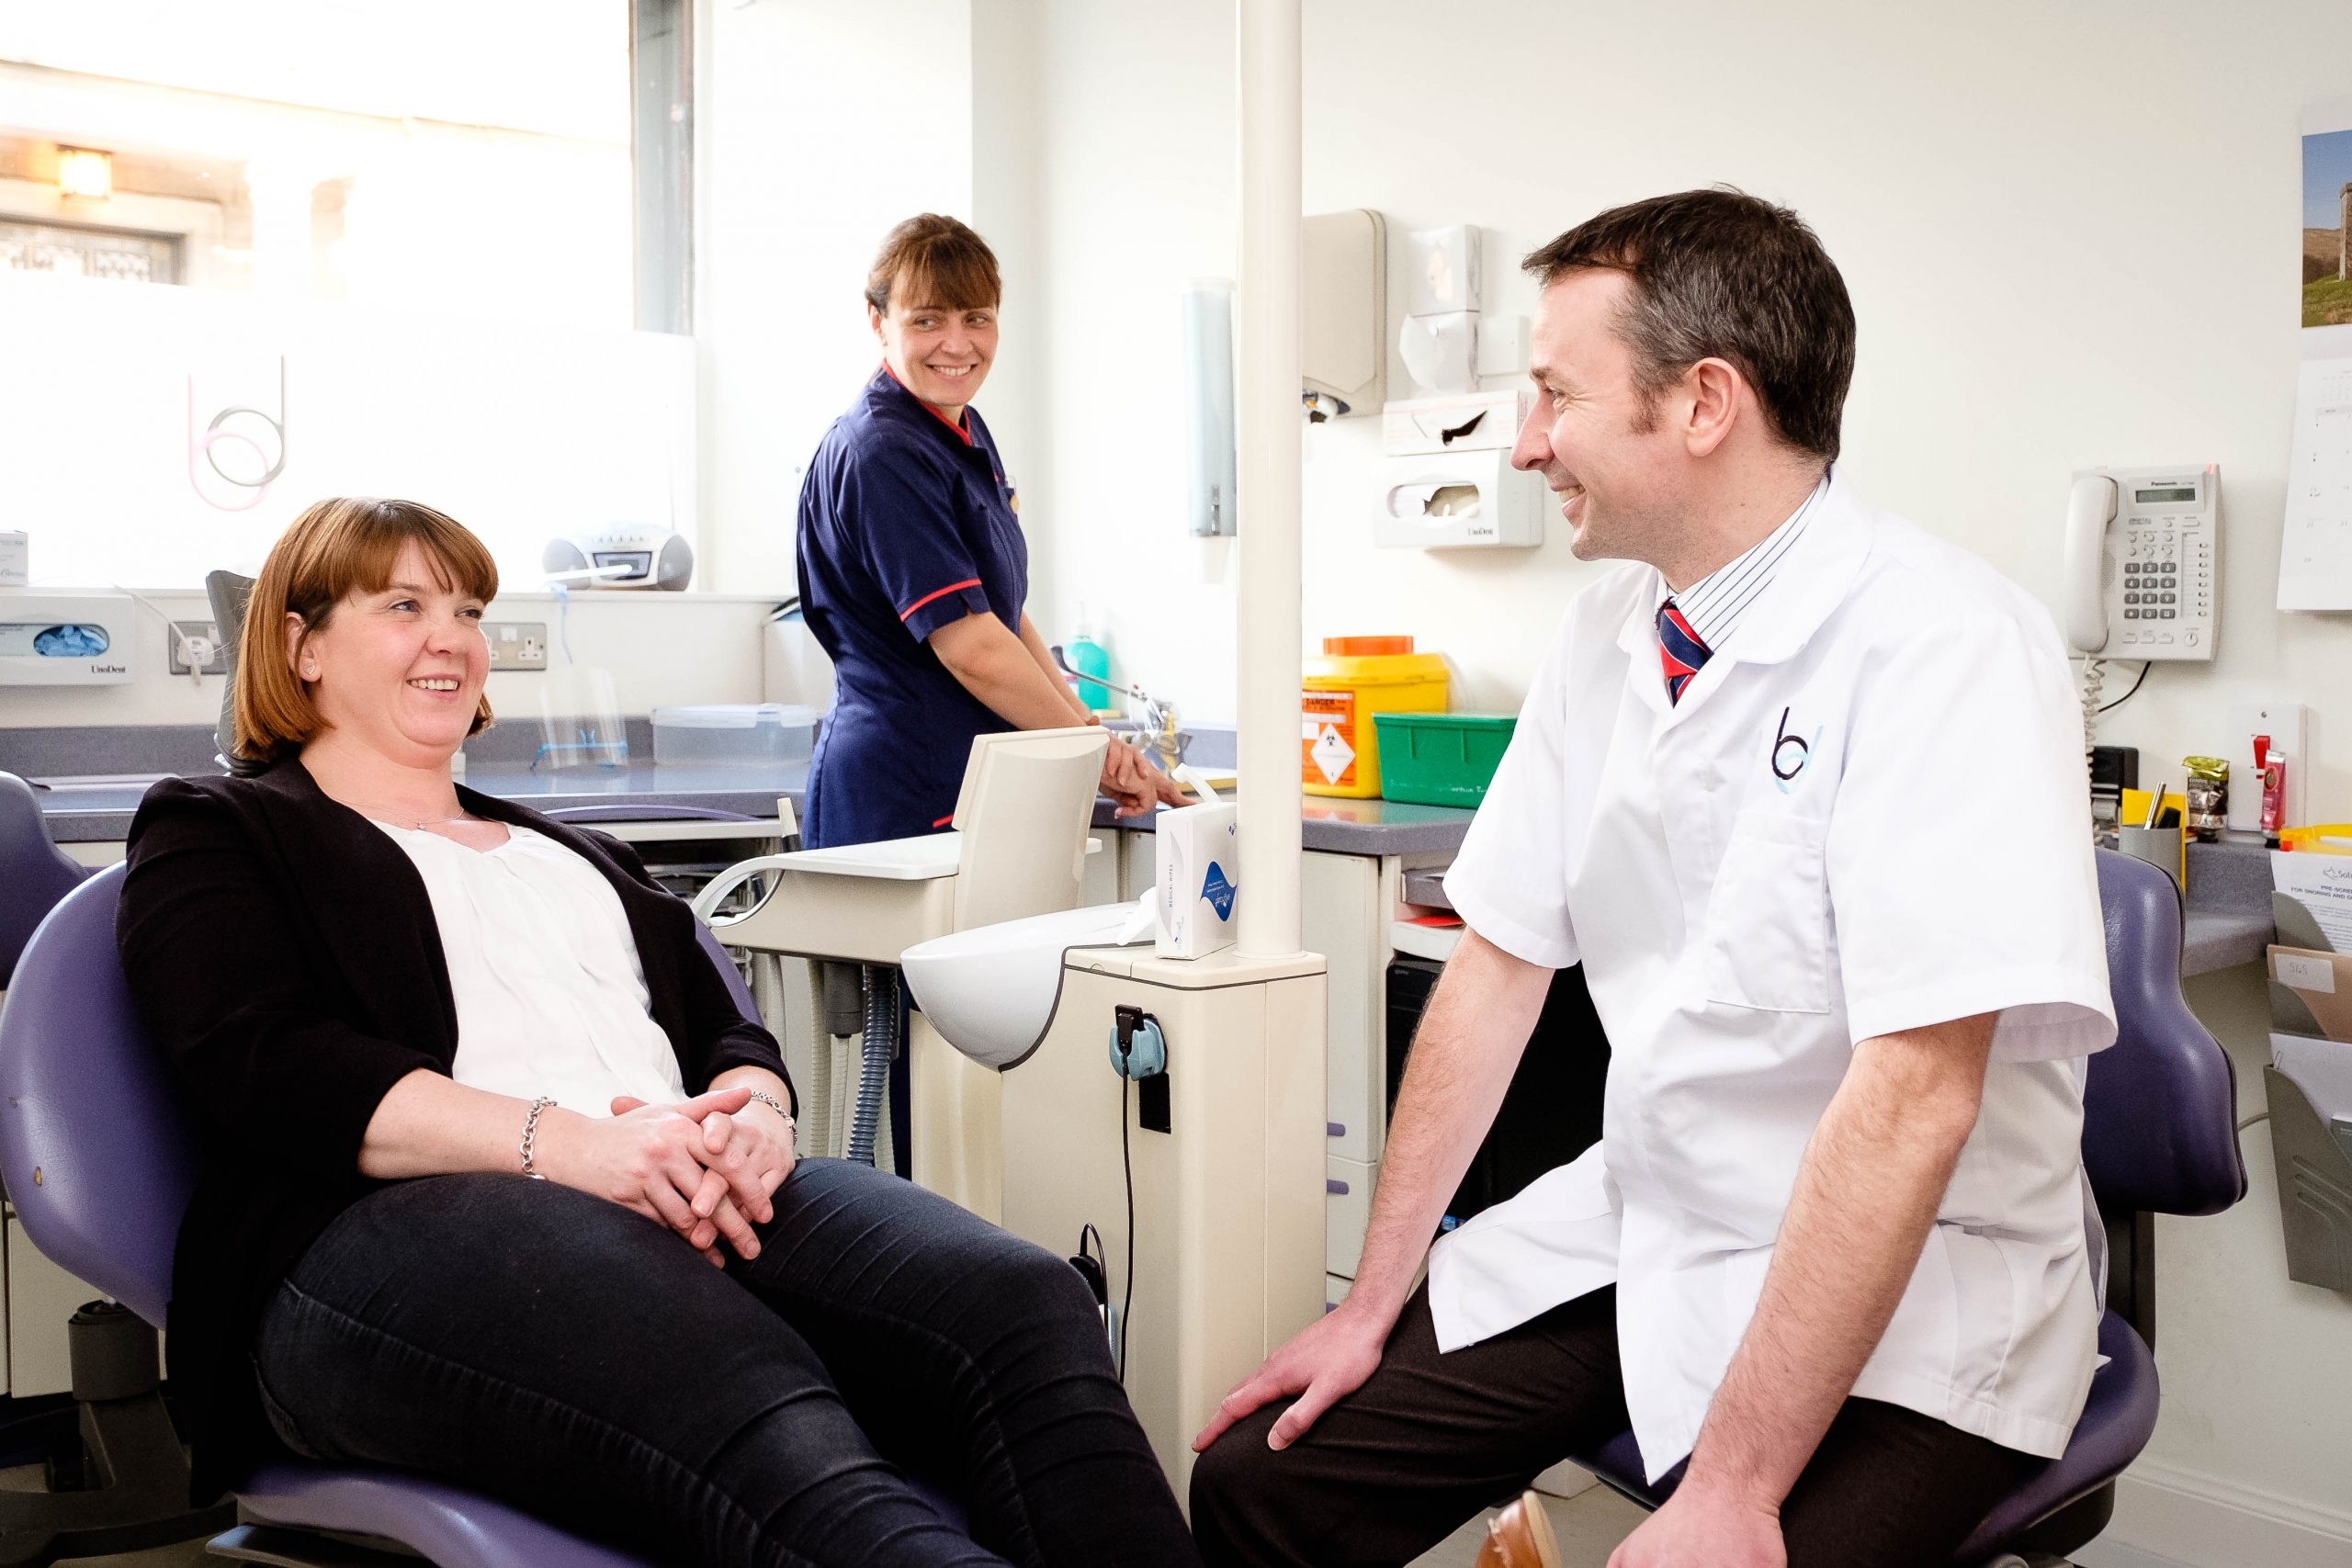 The Barron Dental Team, Edinburgh. Contact their Emergency Dentist for dental emergencies.